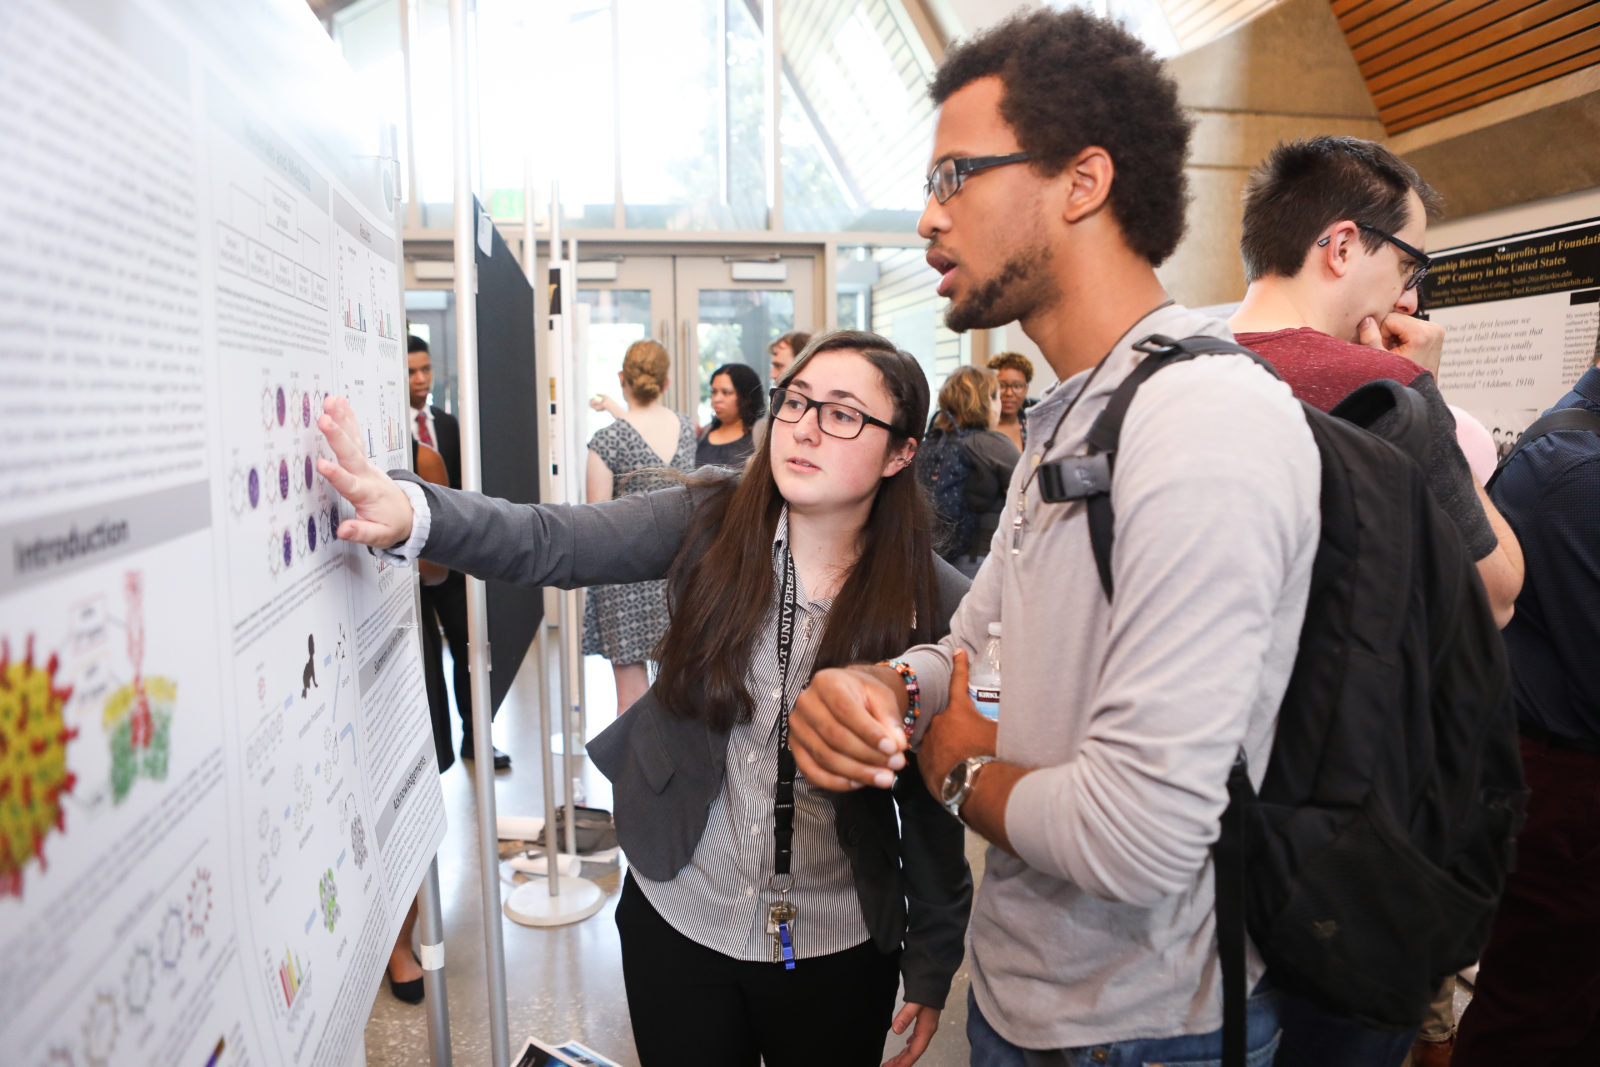 Student presenting at the 17th Annual VSSA Student Research Symposium includes a poster session and oral presentations. Photos by: Susan Urmy